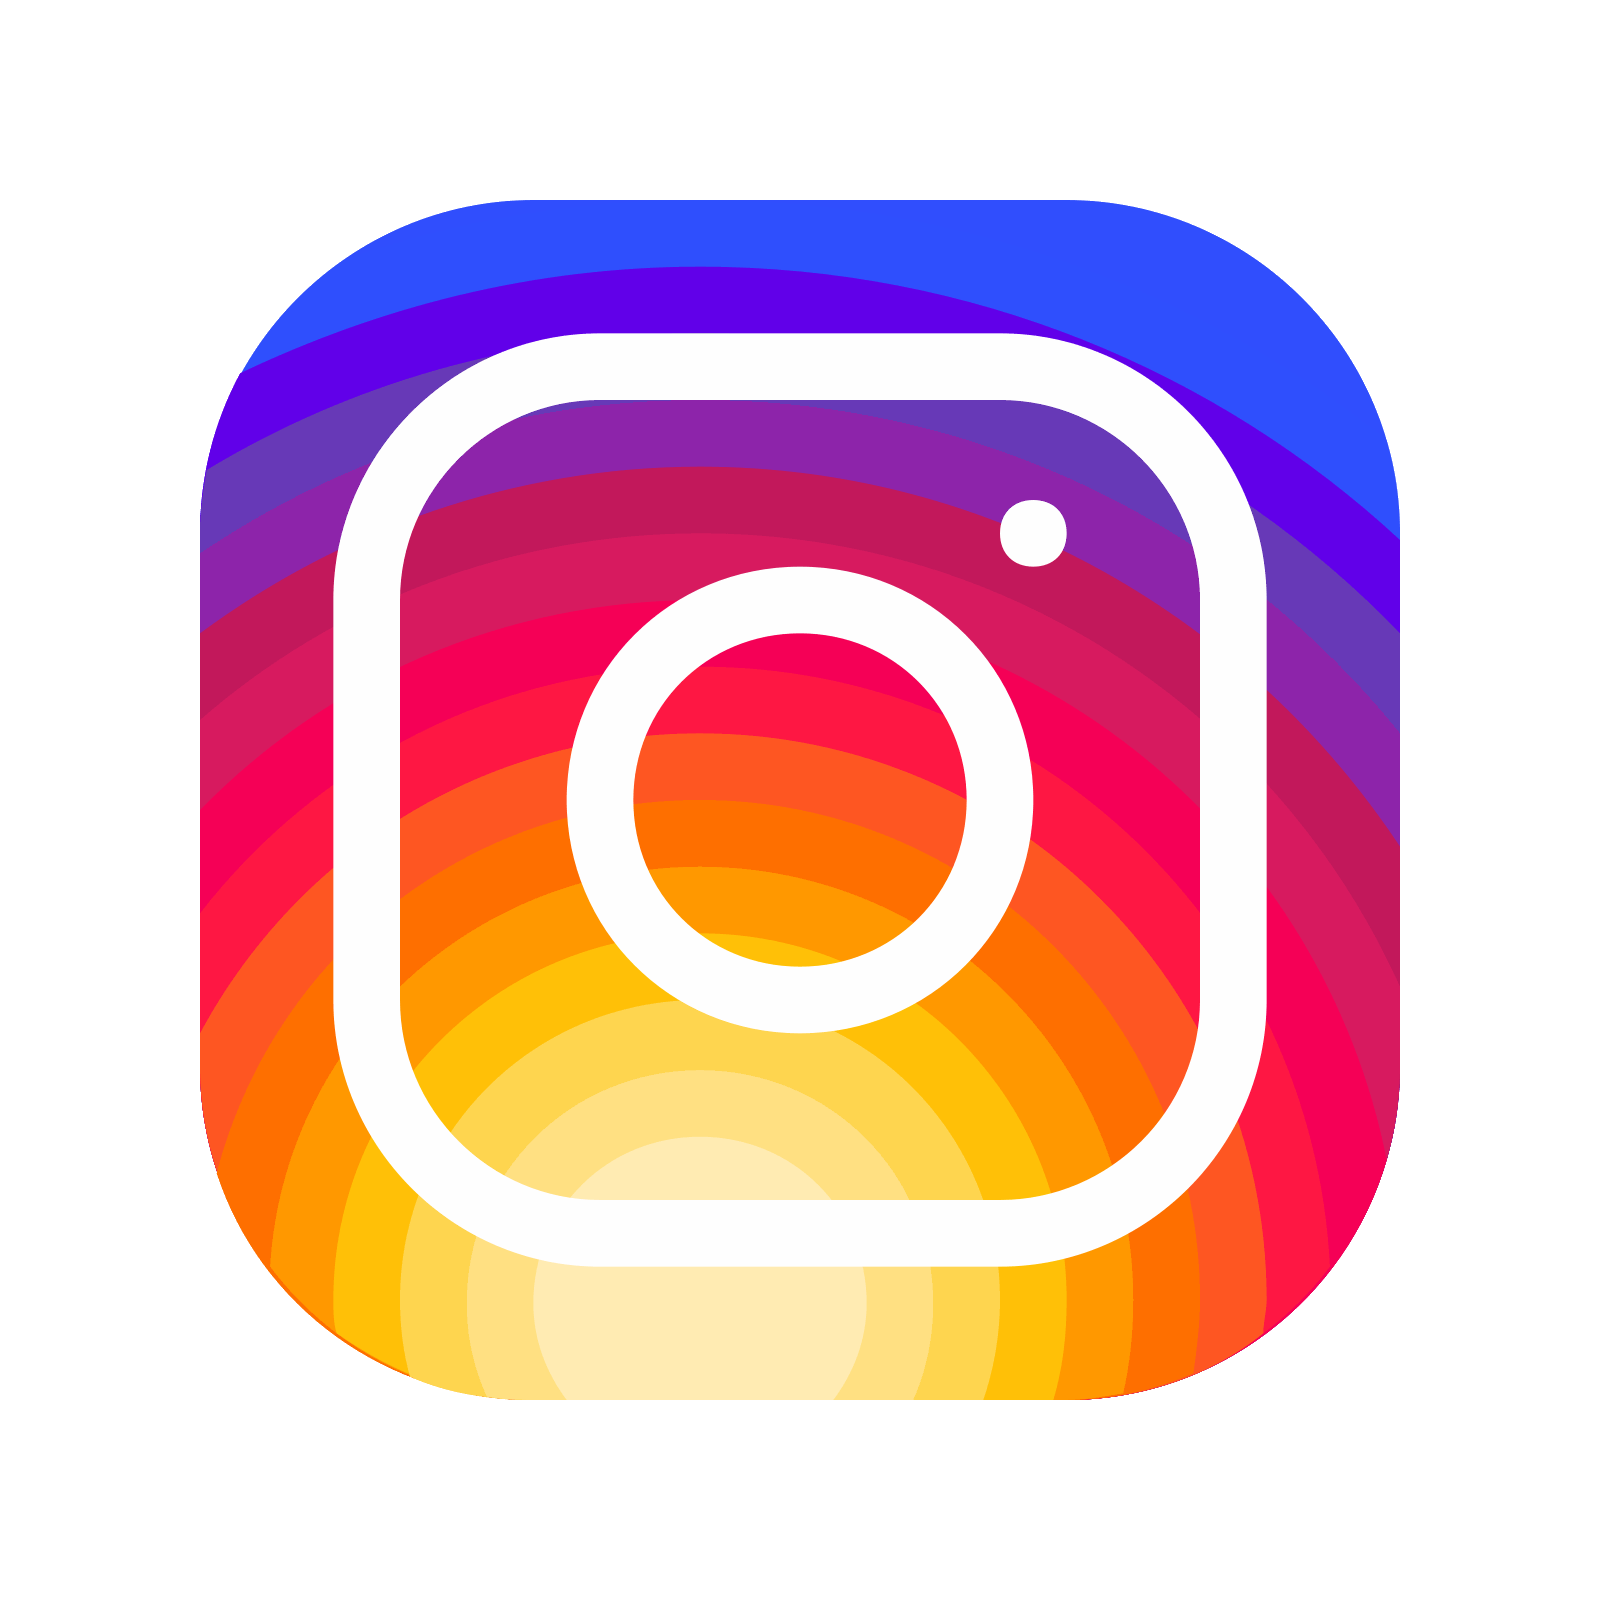 Instagram Tips & Networking @Elgin Business Networking Lunch